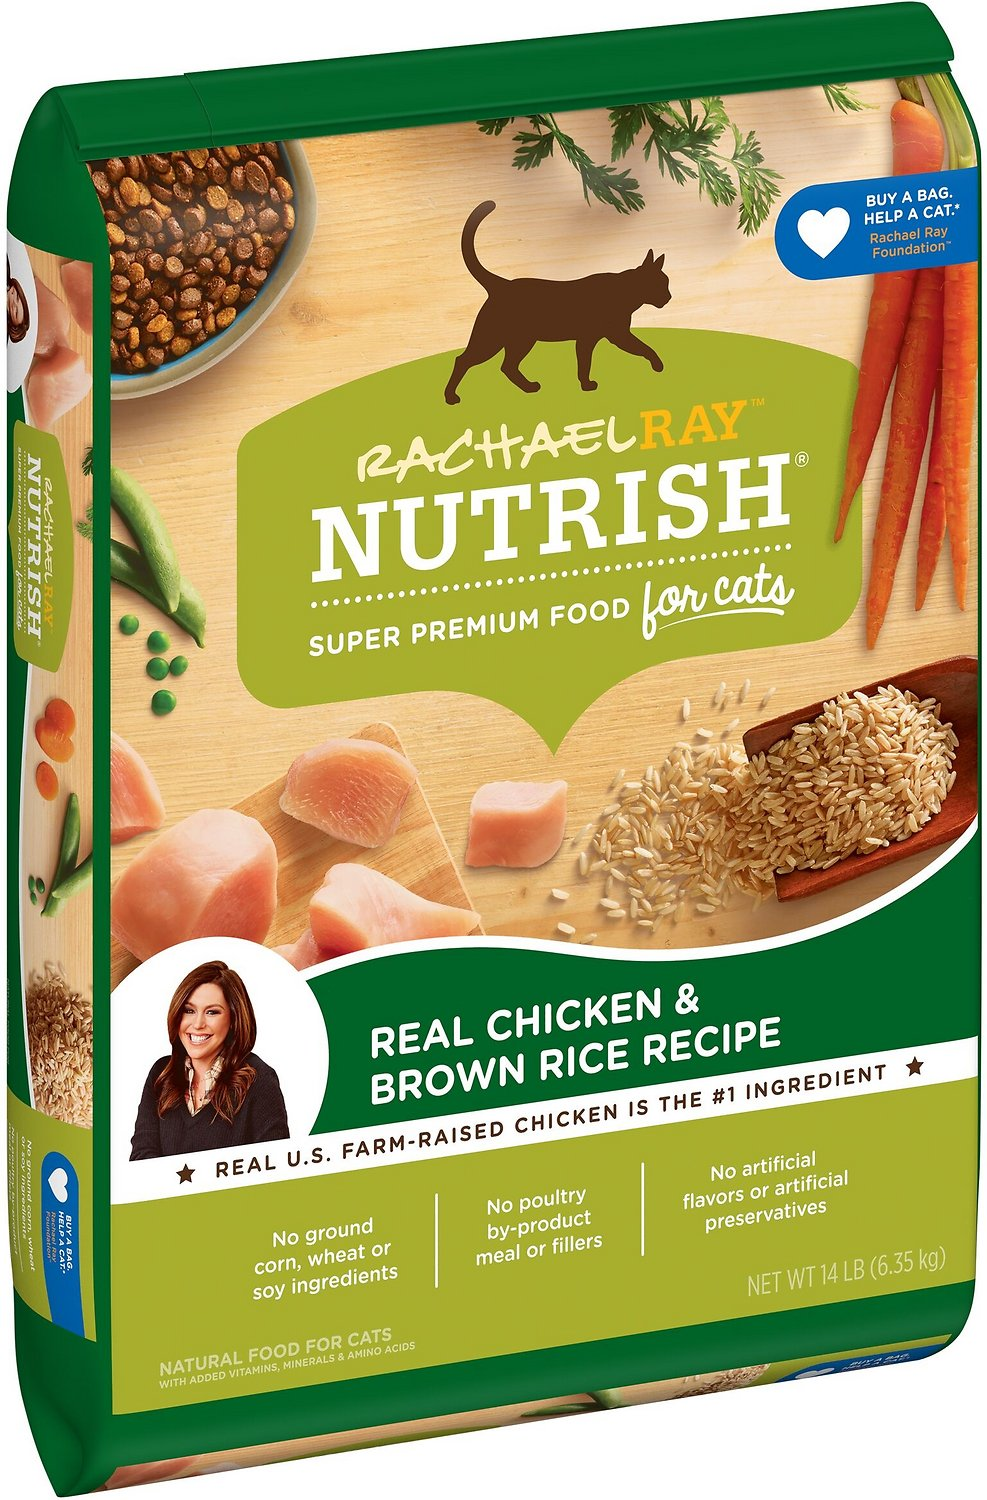 Rachael Ray Nutrish Dry Cat Food Reviews